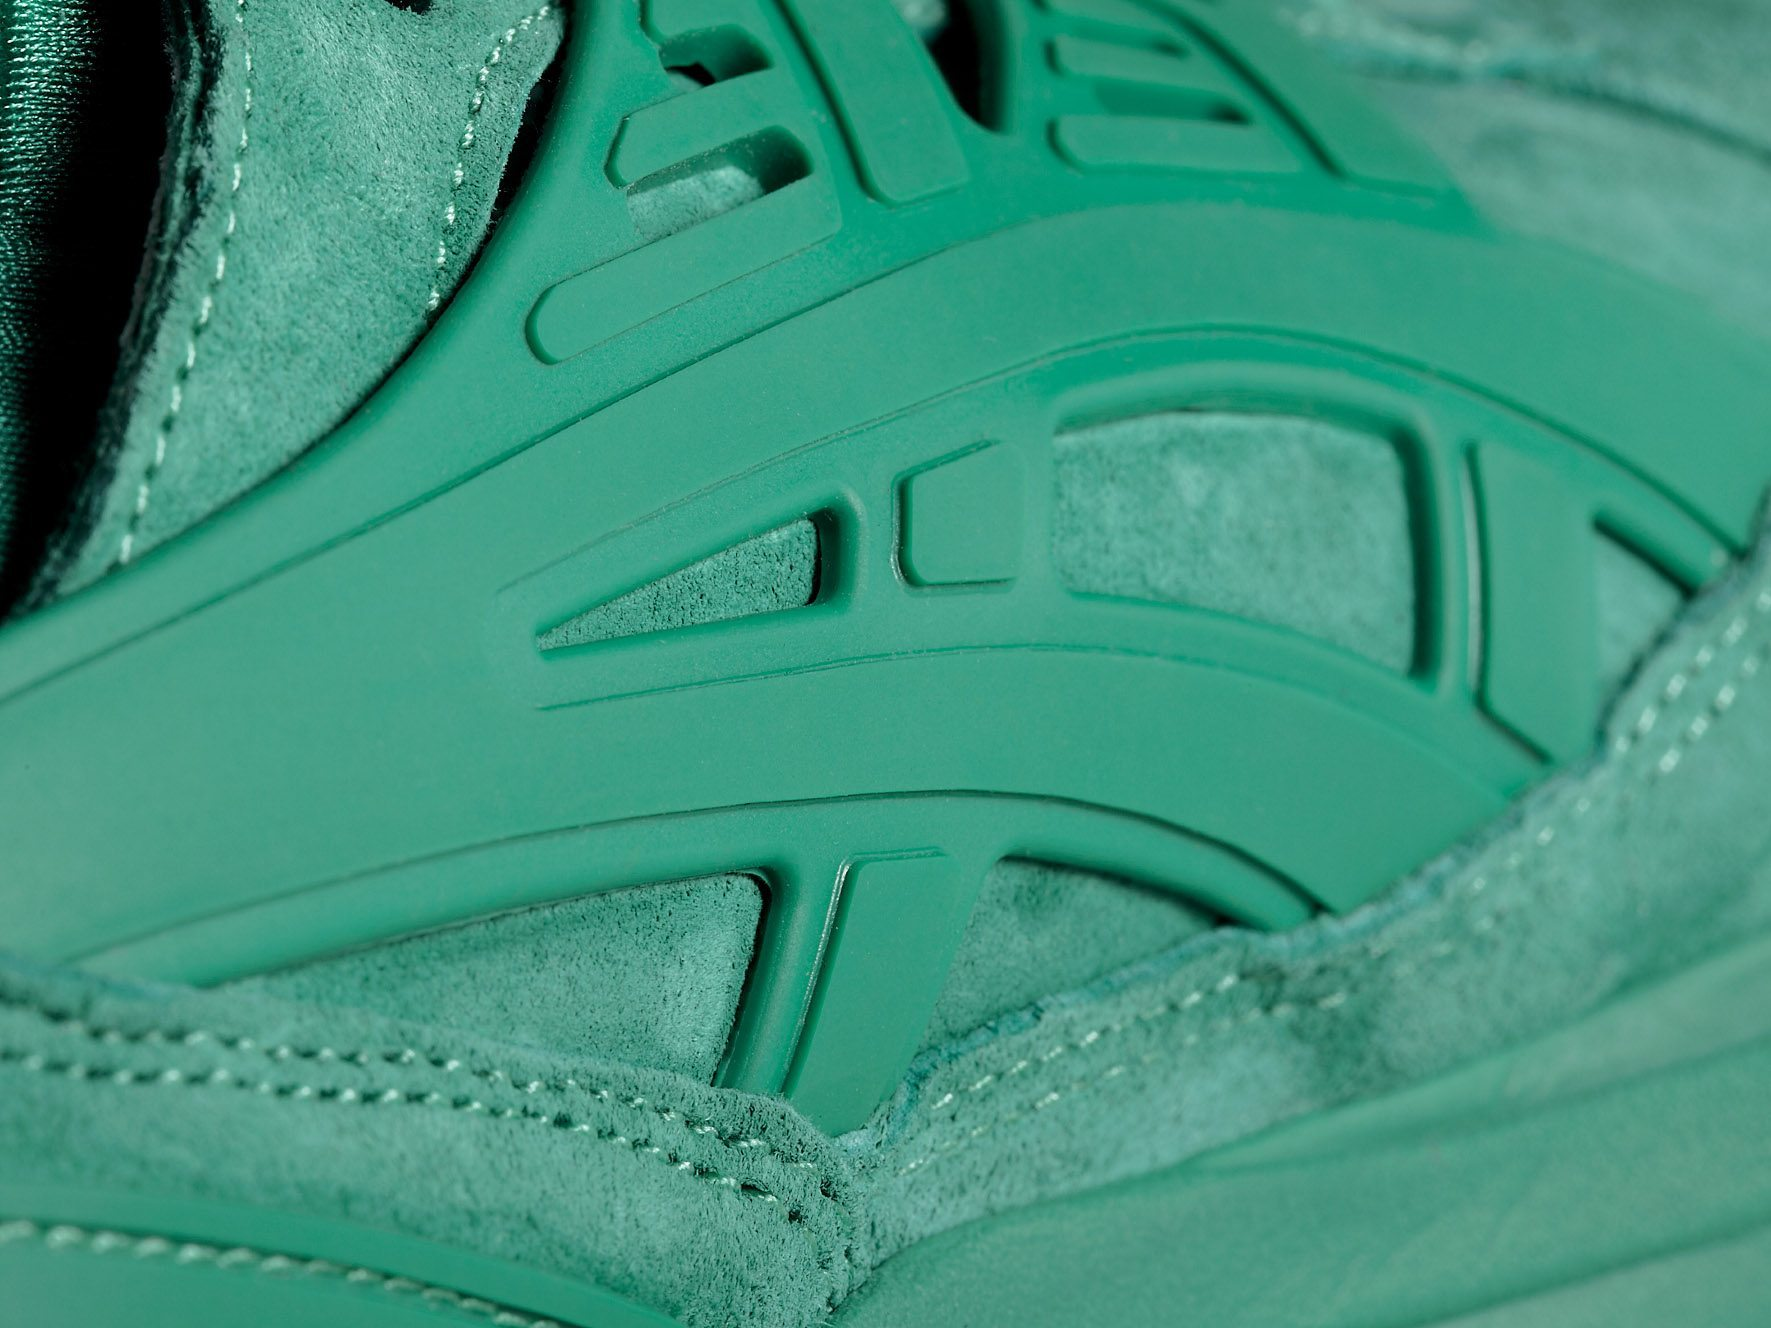 ASICS Tiger Gel Kayano Trainer Ocean Pack 8